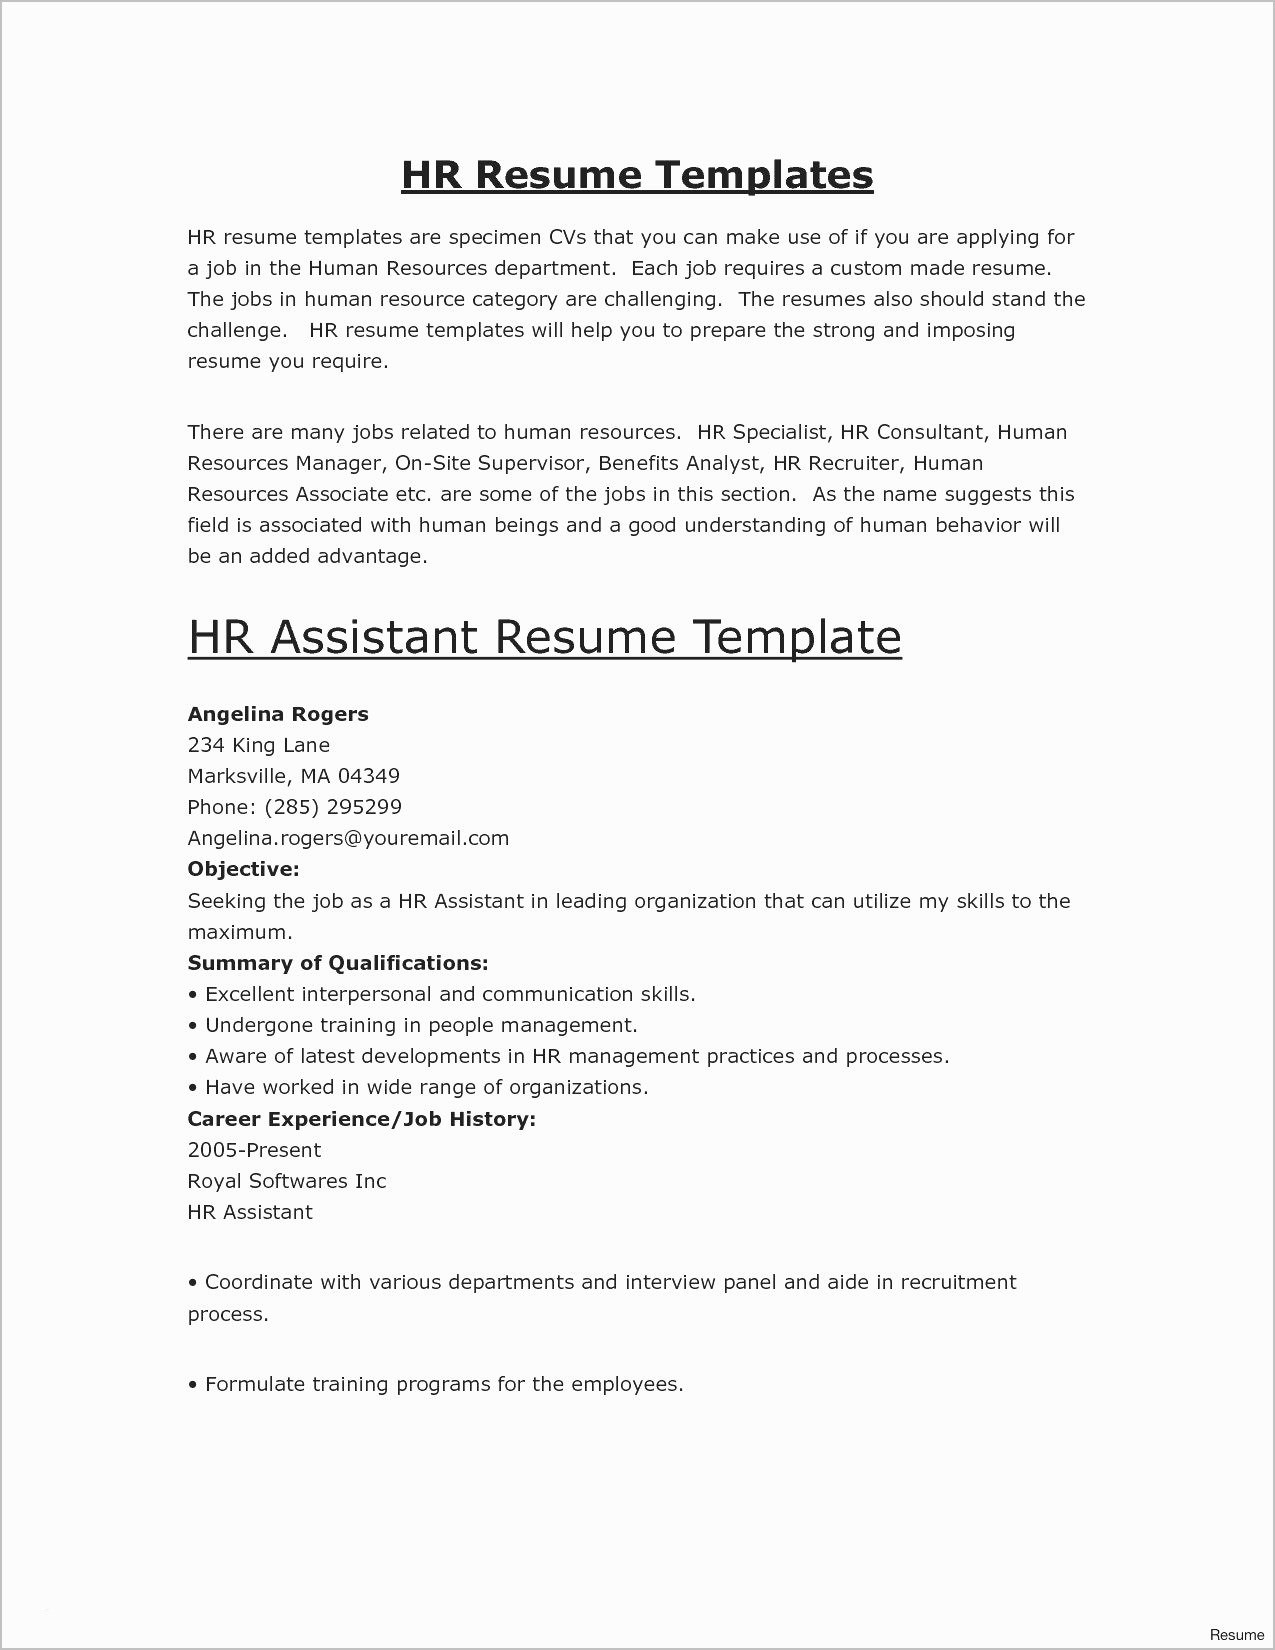 Professional association Of Resume Writers - top Resume Writers Inspirational Resume Writing Business Good Resume